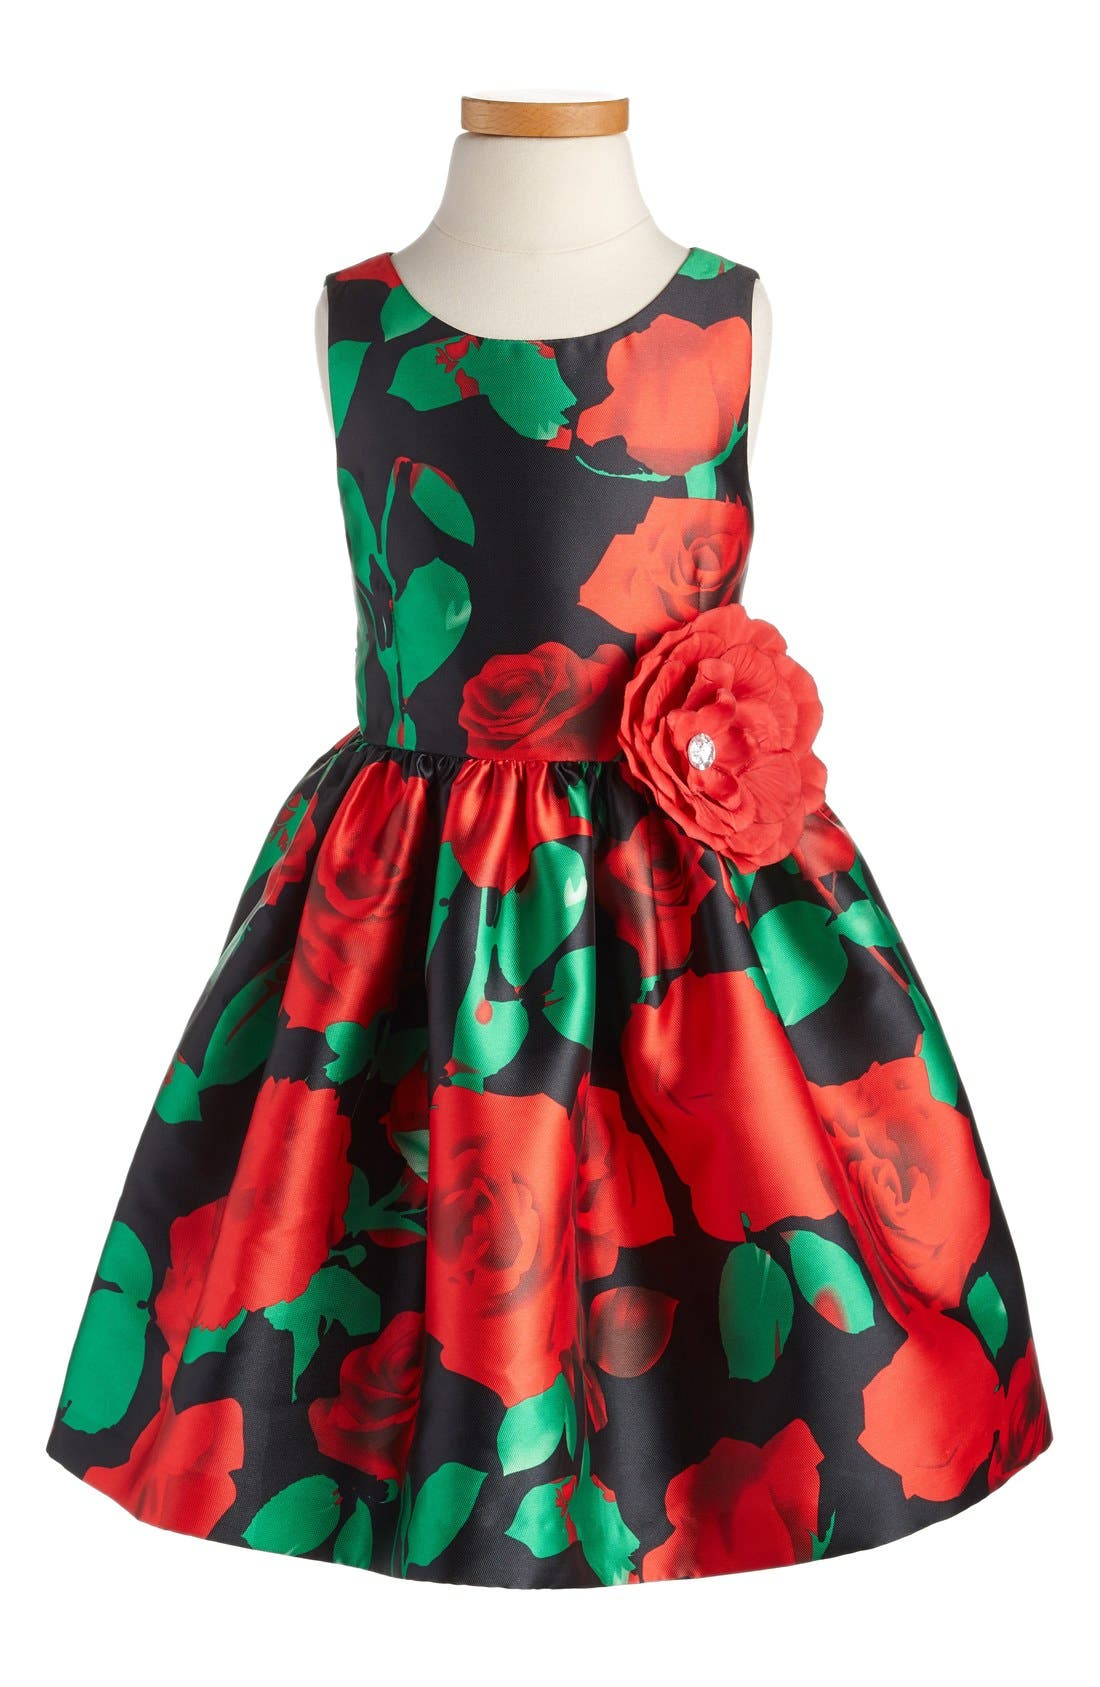 Alternate Image 1 Selected - Pippa & Julie Rose Print Fit & Flare Dress (Toddler Girls, Little Girls & Big Girls)